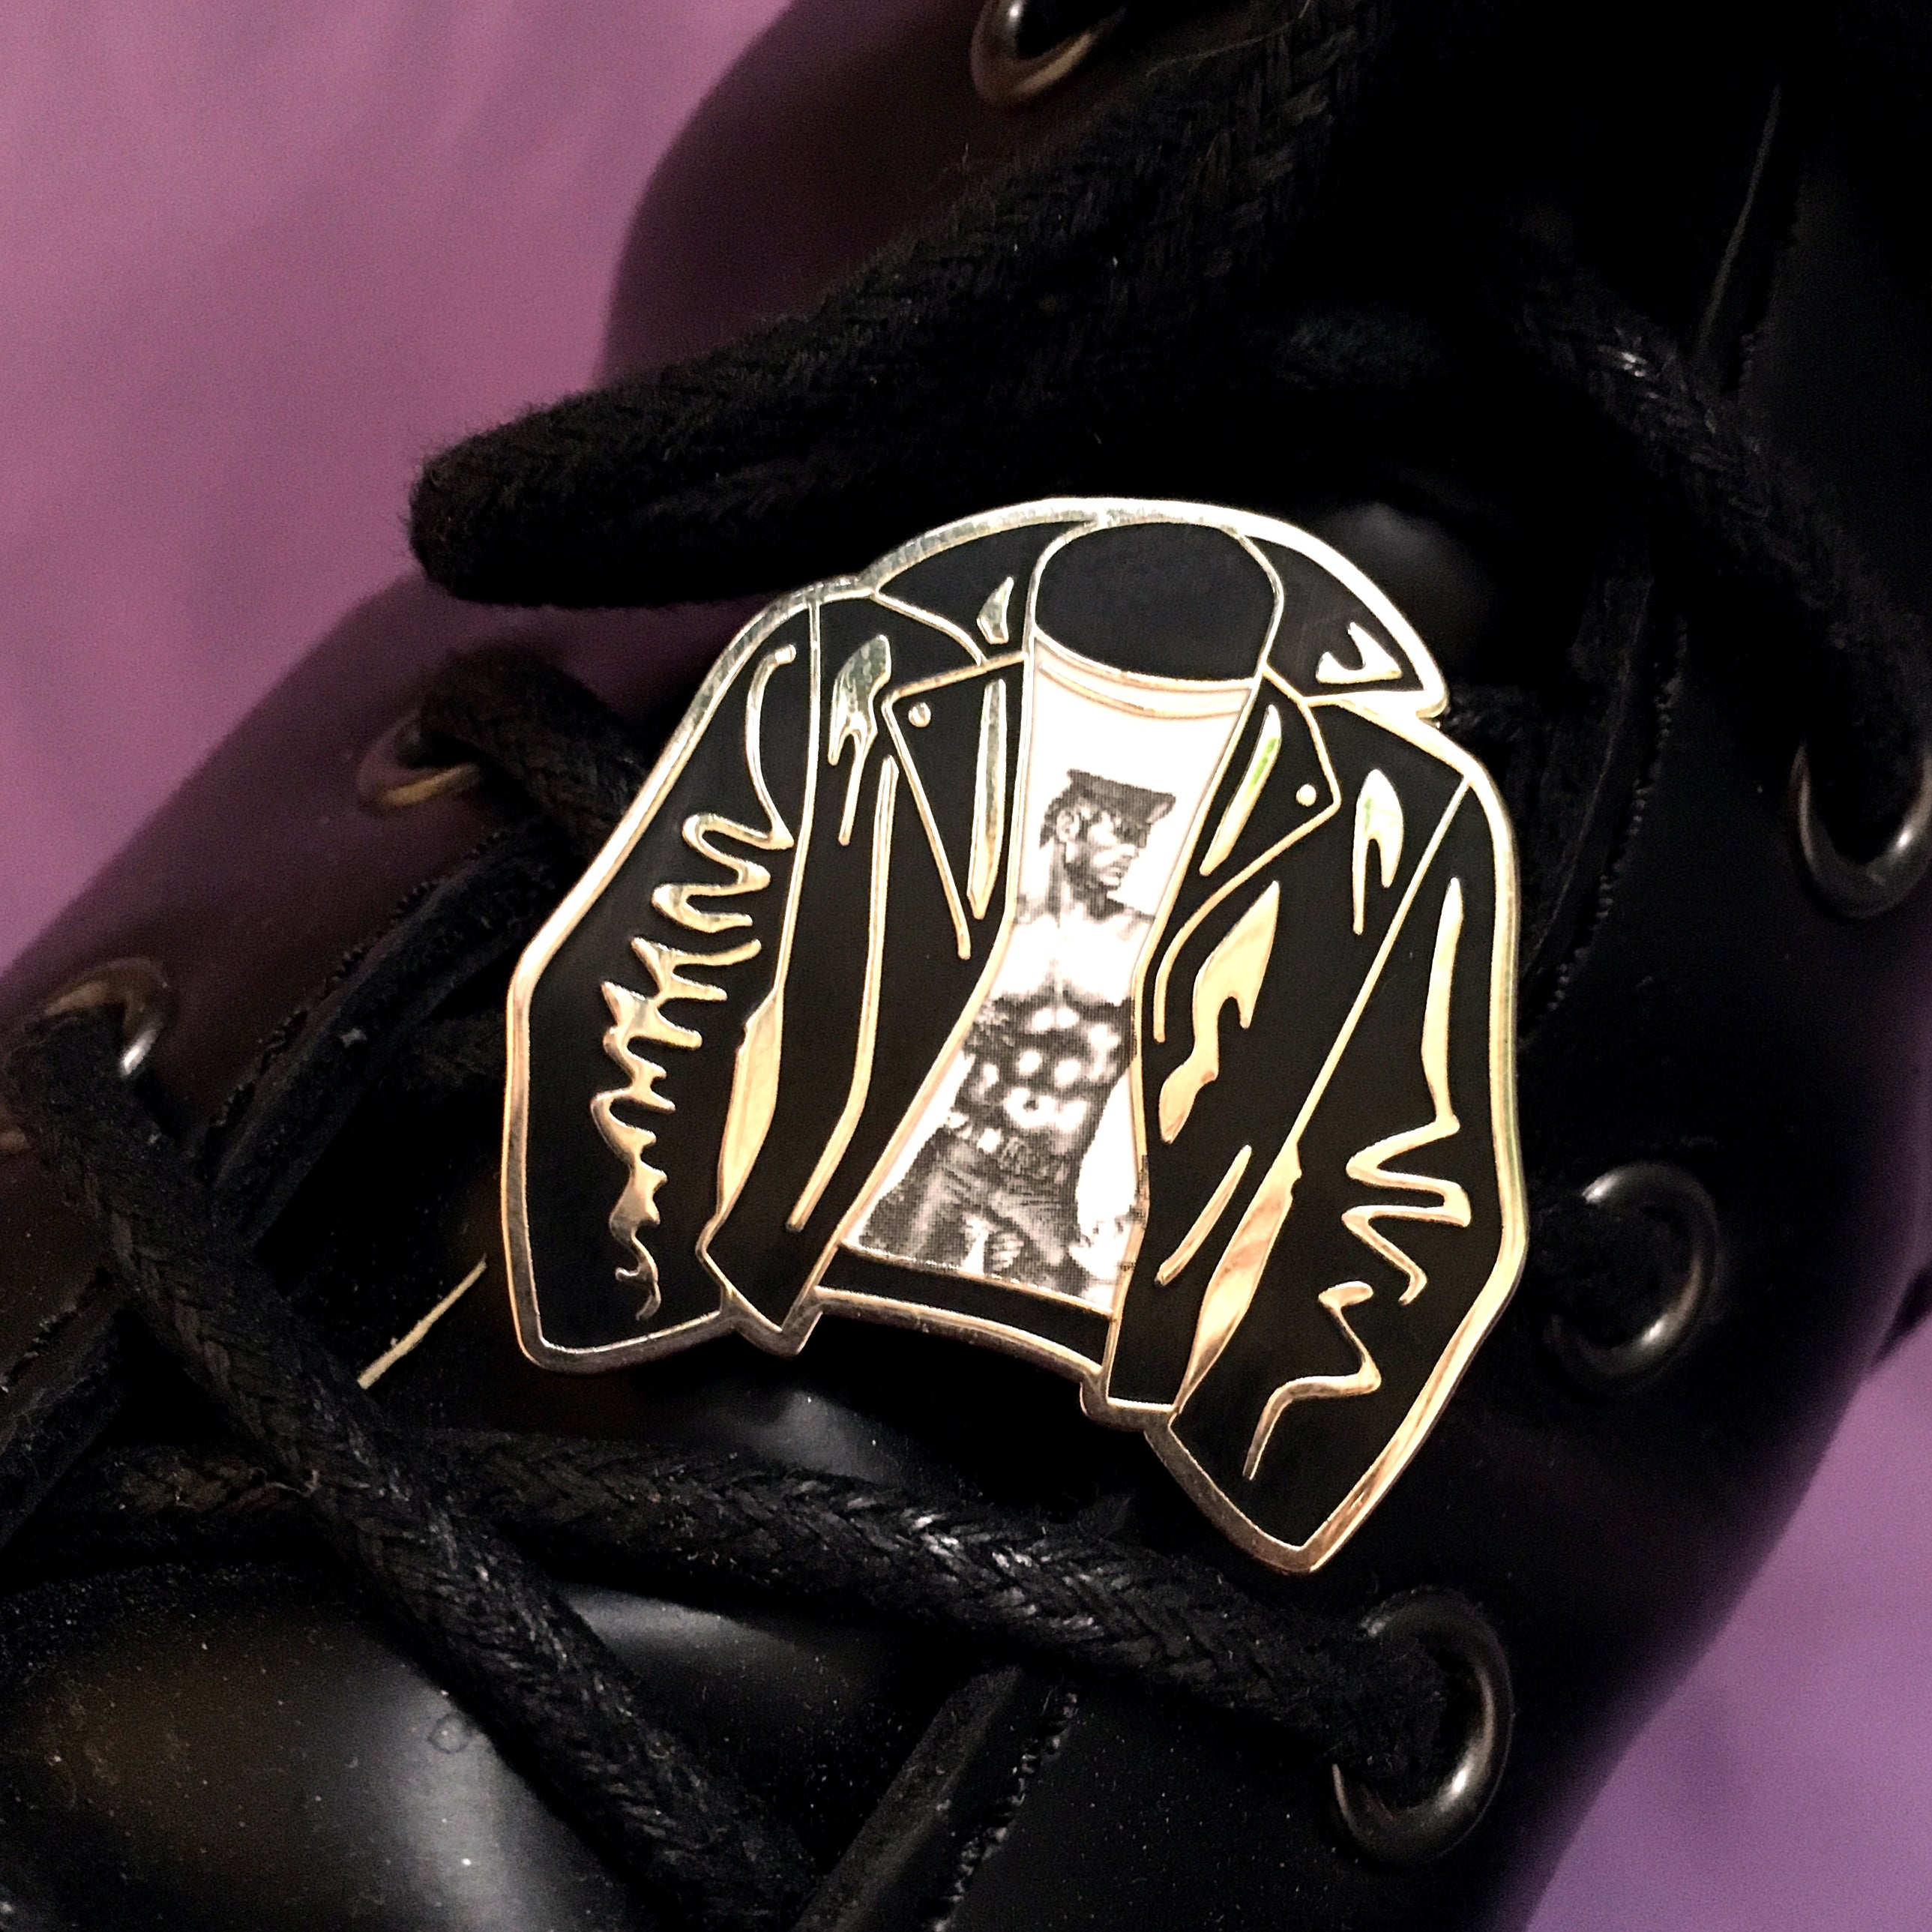 Tom Of Finland Leather Jacket Pin - GAYPIN'